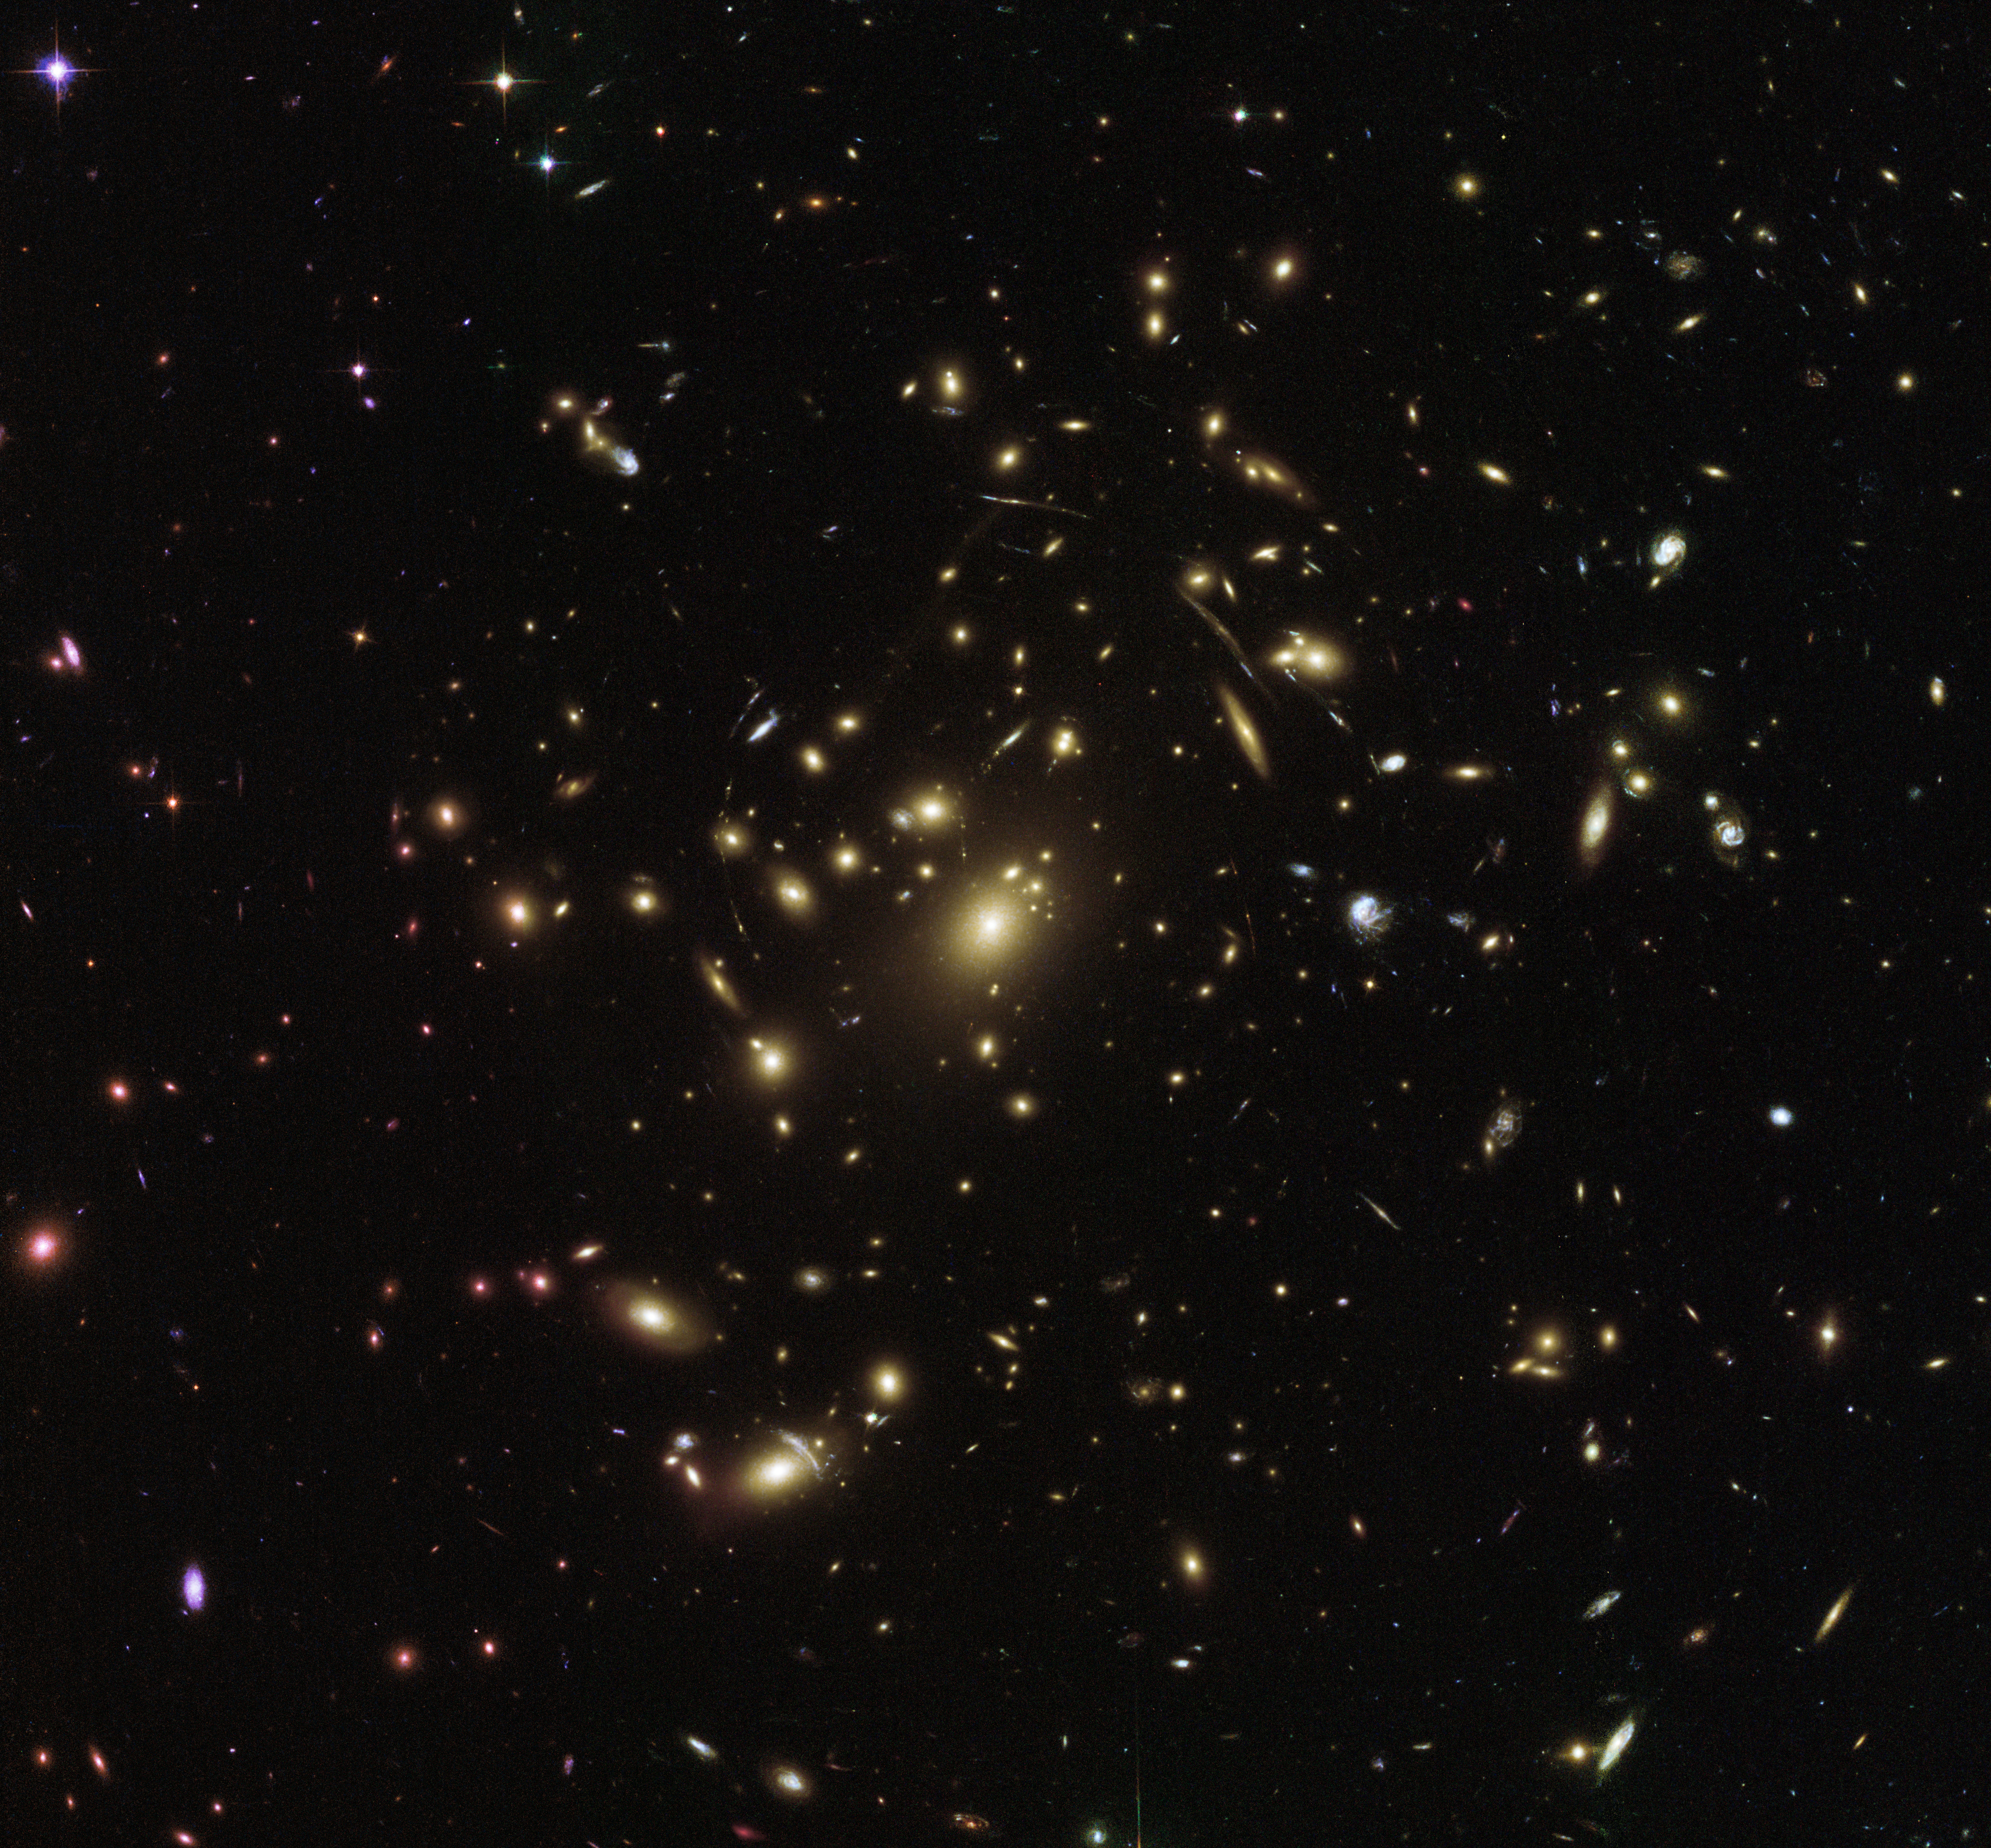 Hubble Sees Galaxy Cluster Warping Space and Time | NASA